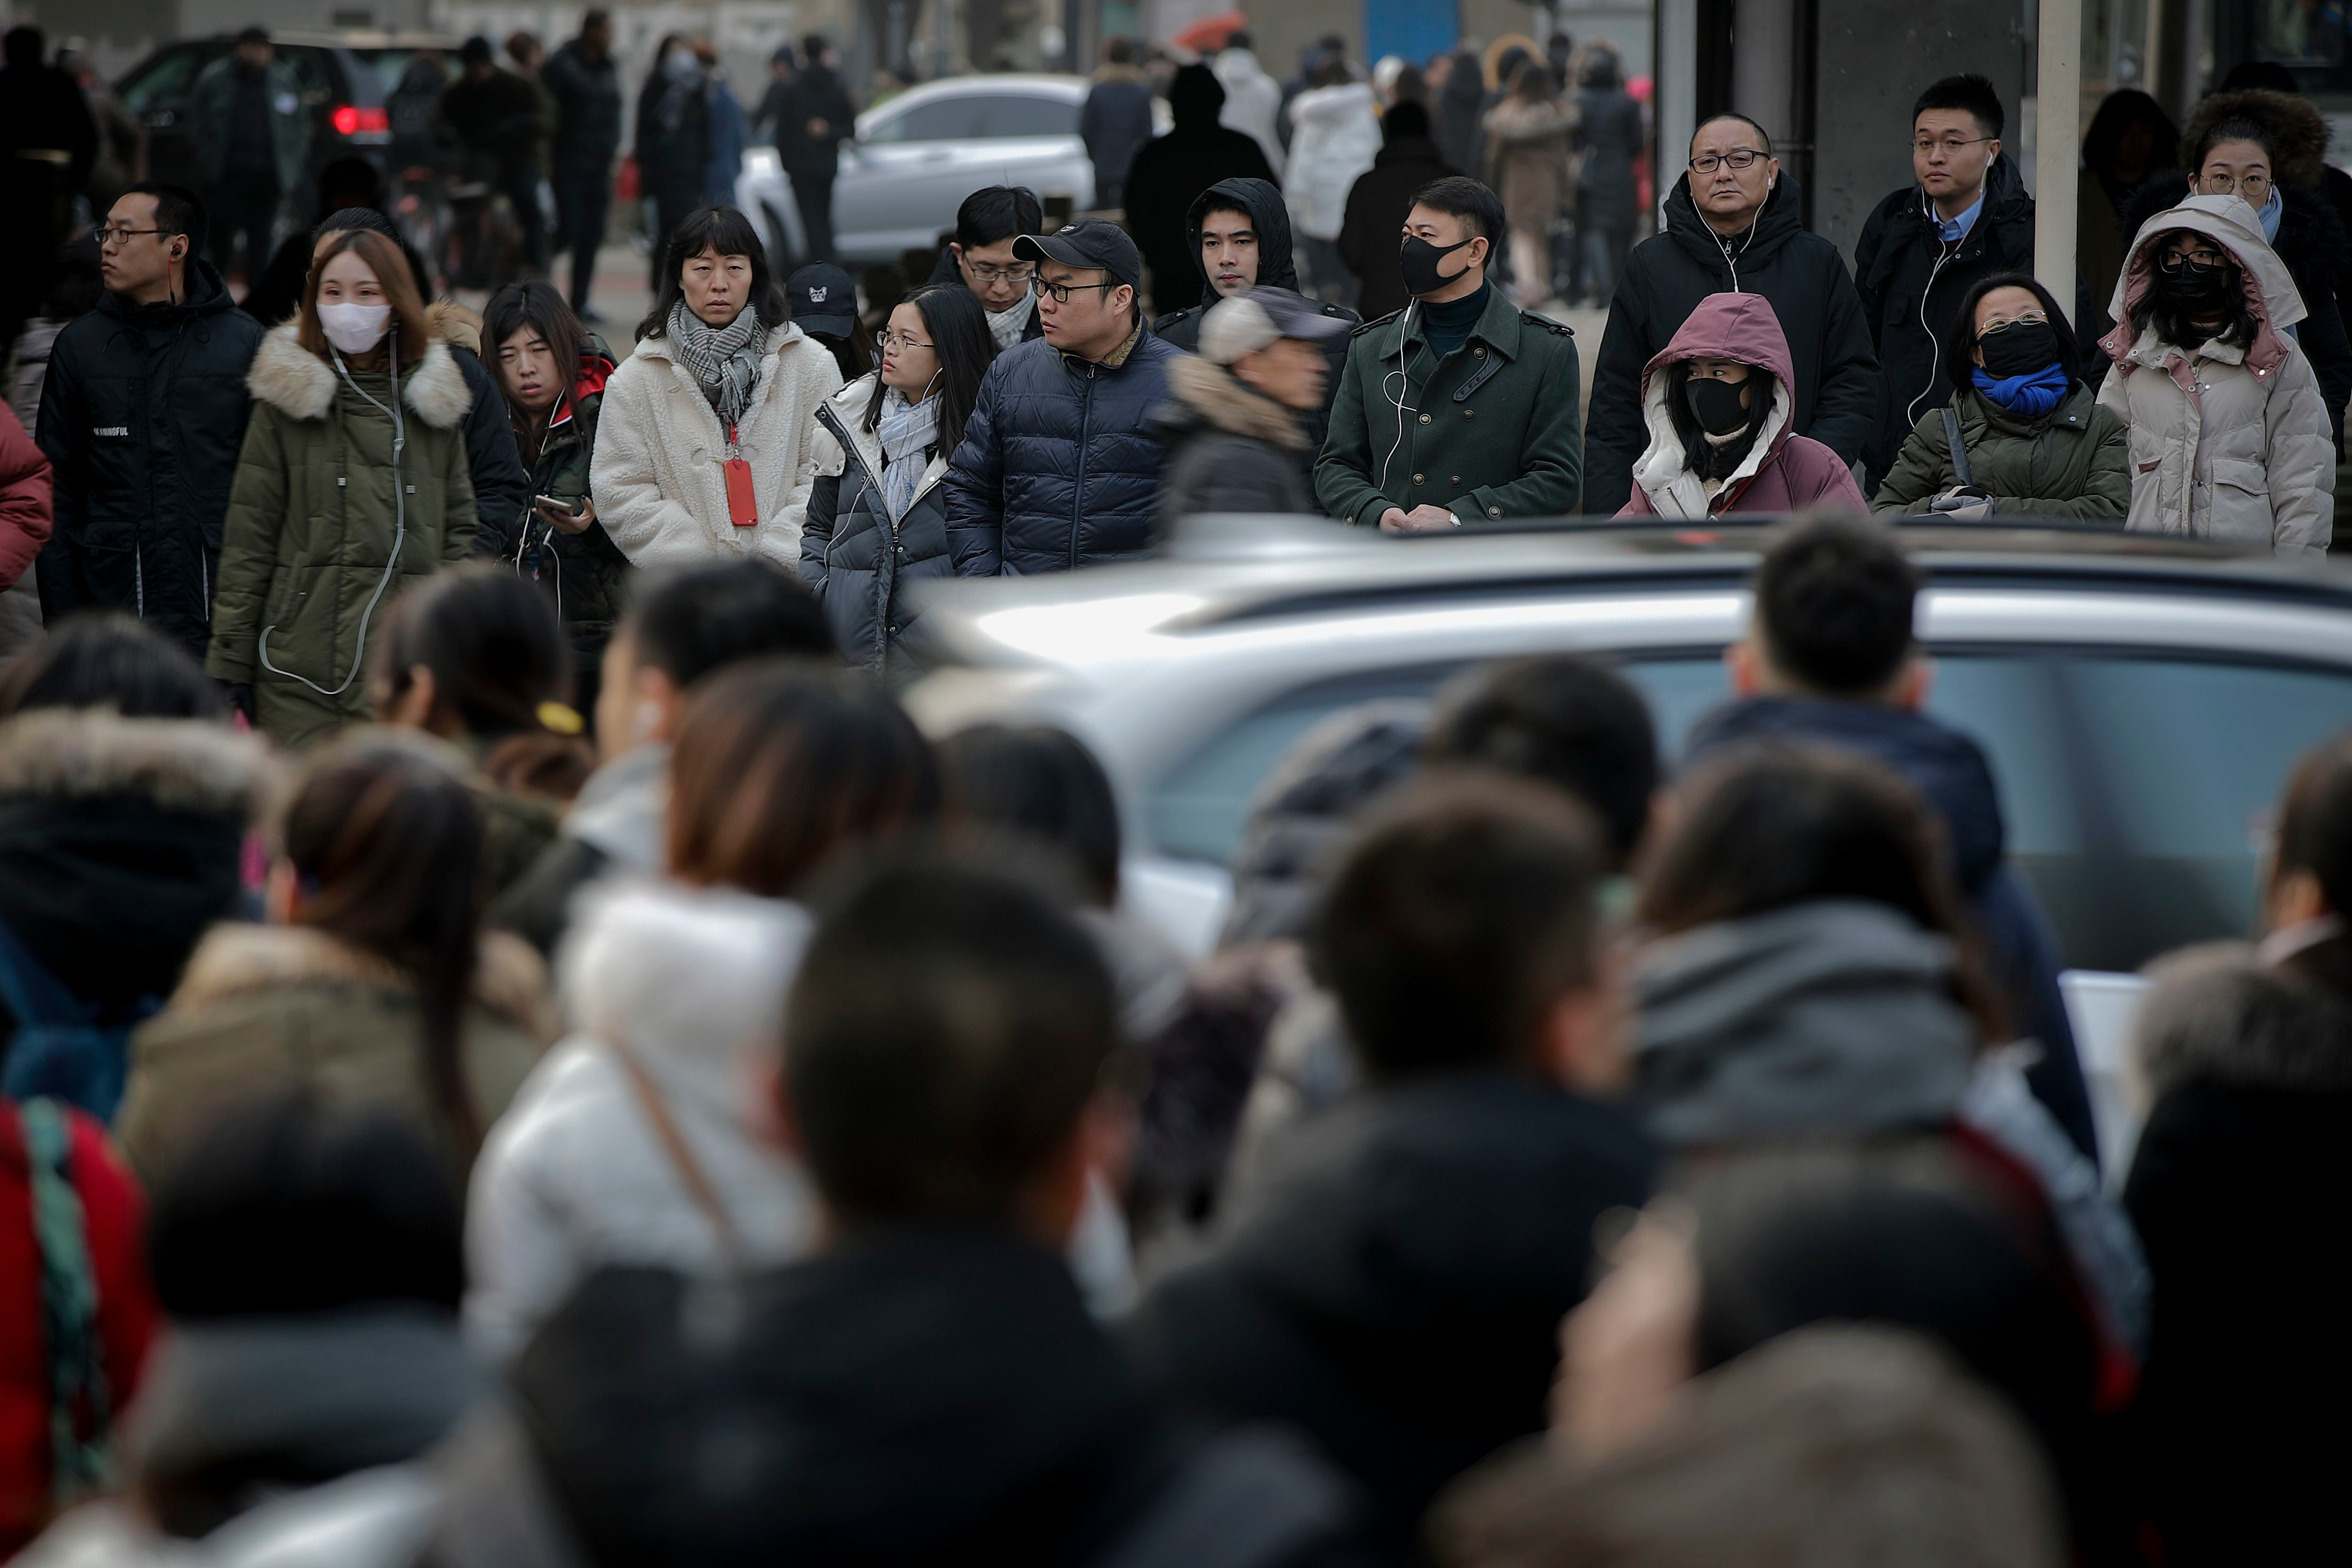 Pedestrians wait to cross a traffic intersection at the Central Business District in Beijing, . China's 2018 trade surplus with the United States surged to a record $323.3 billion but exports contracted in December as the delayed impact of President Donald Trump's tariff hikes started to depress demand. Global exports shrank 4.5 percent in December, reflecting weak consumer demandTrade, Beijing, China - 14 Jan 2019